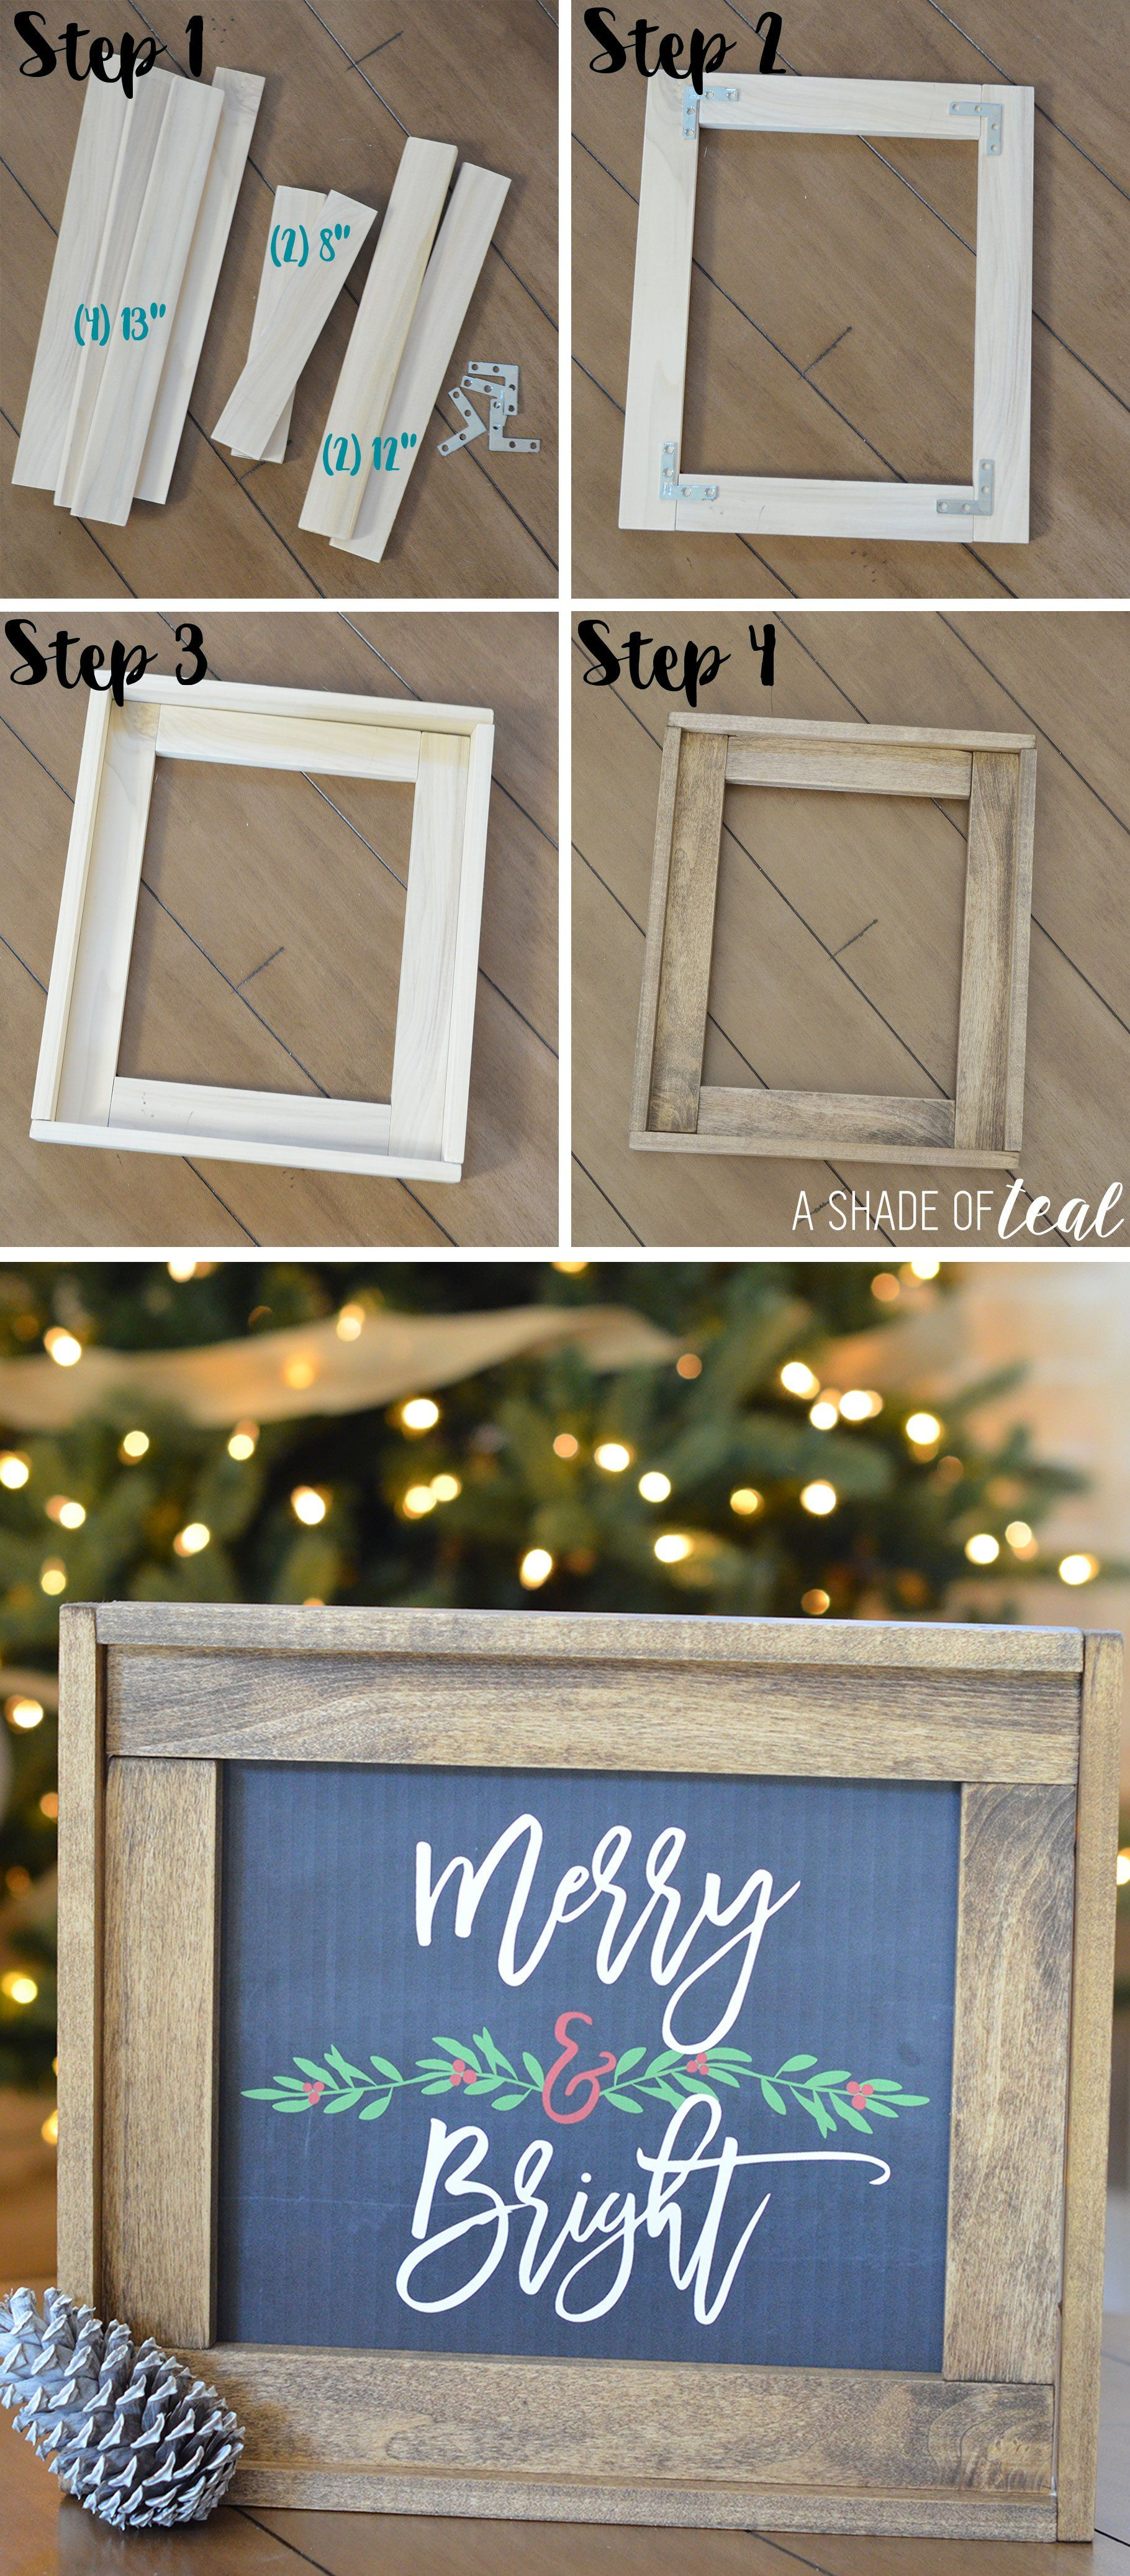 Christmas Mantle Update, How to make a Rustic Wood Frame | Pinterest ...